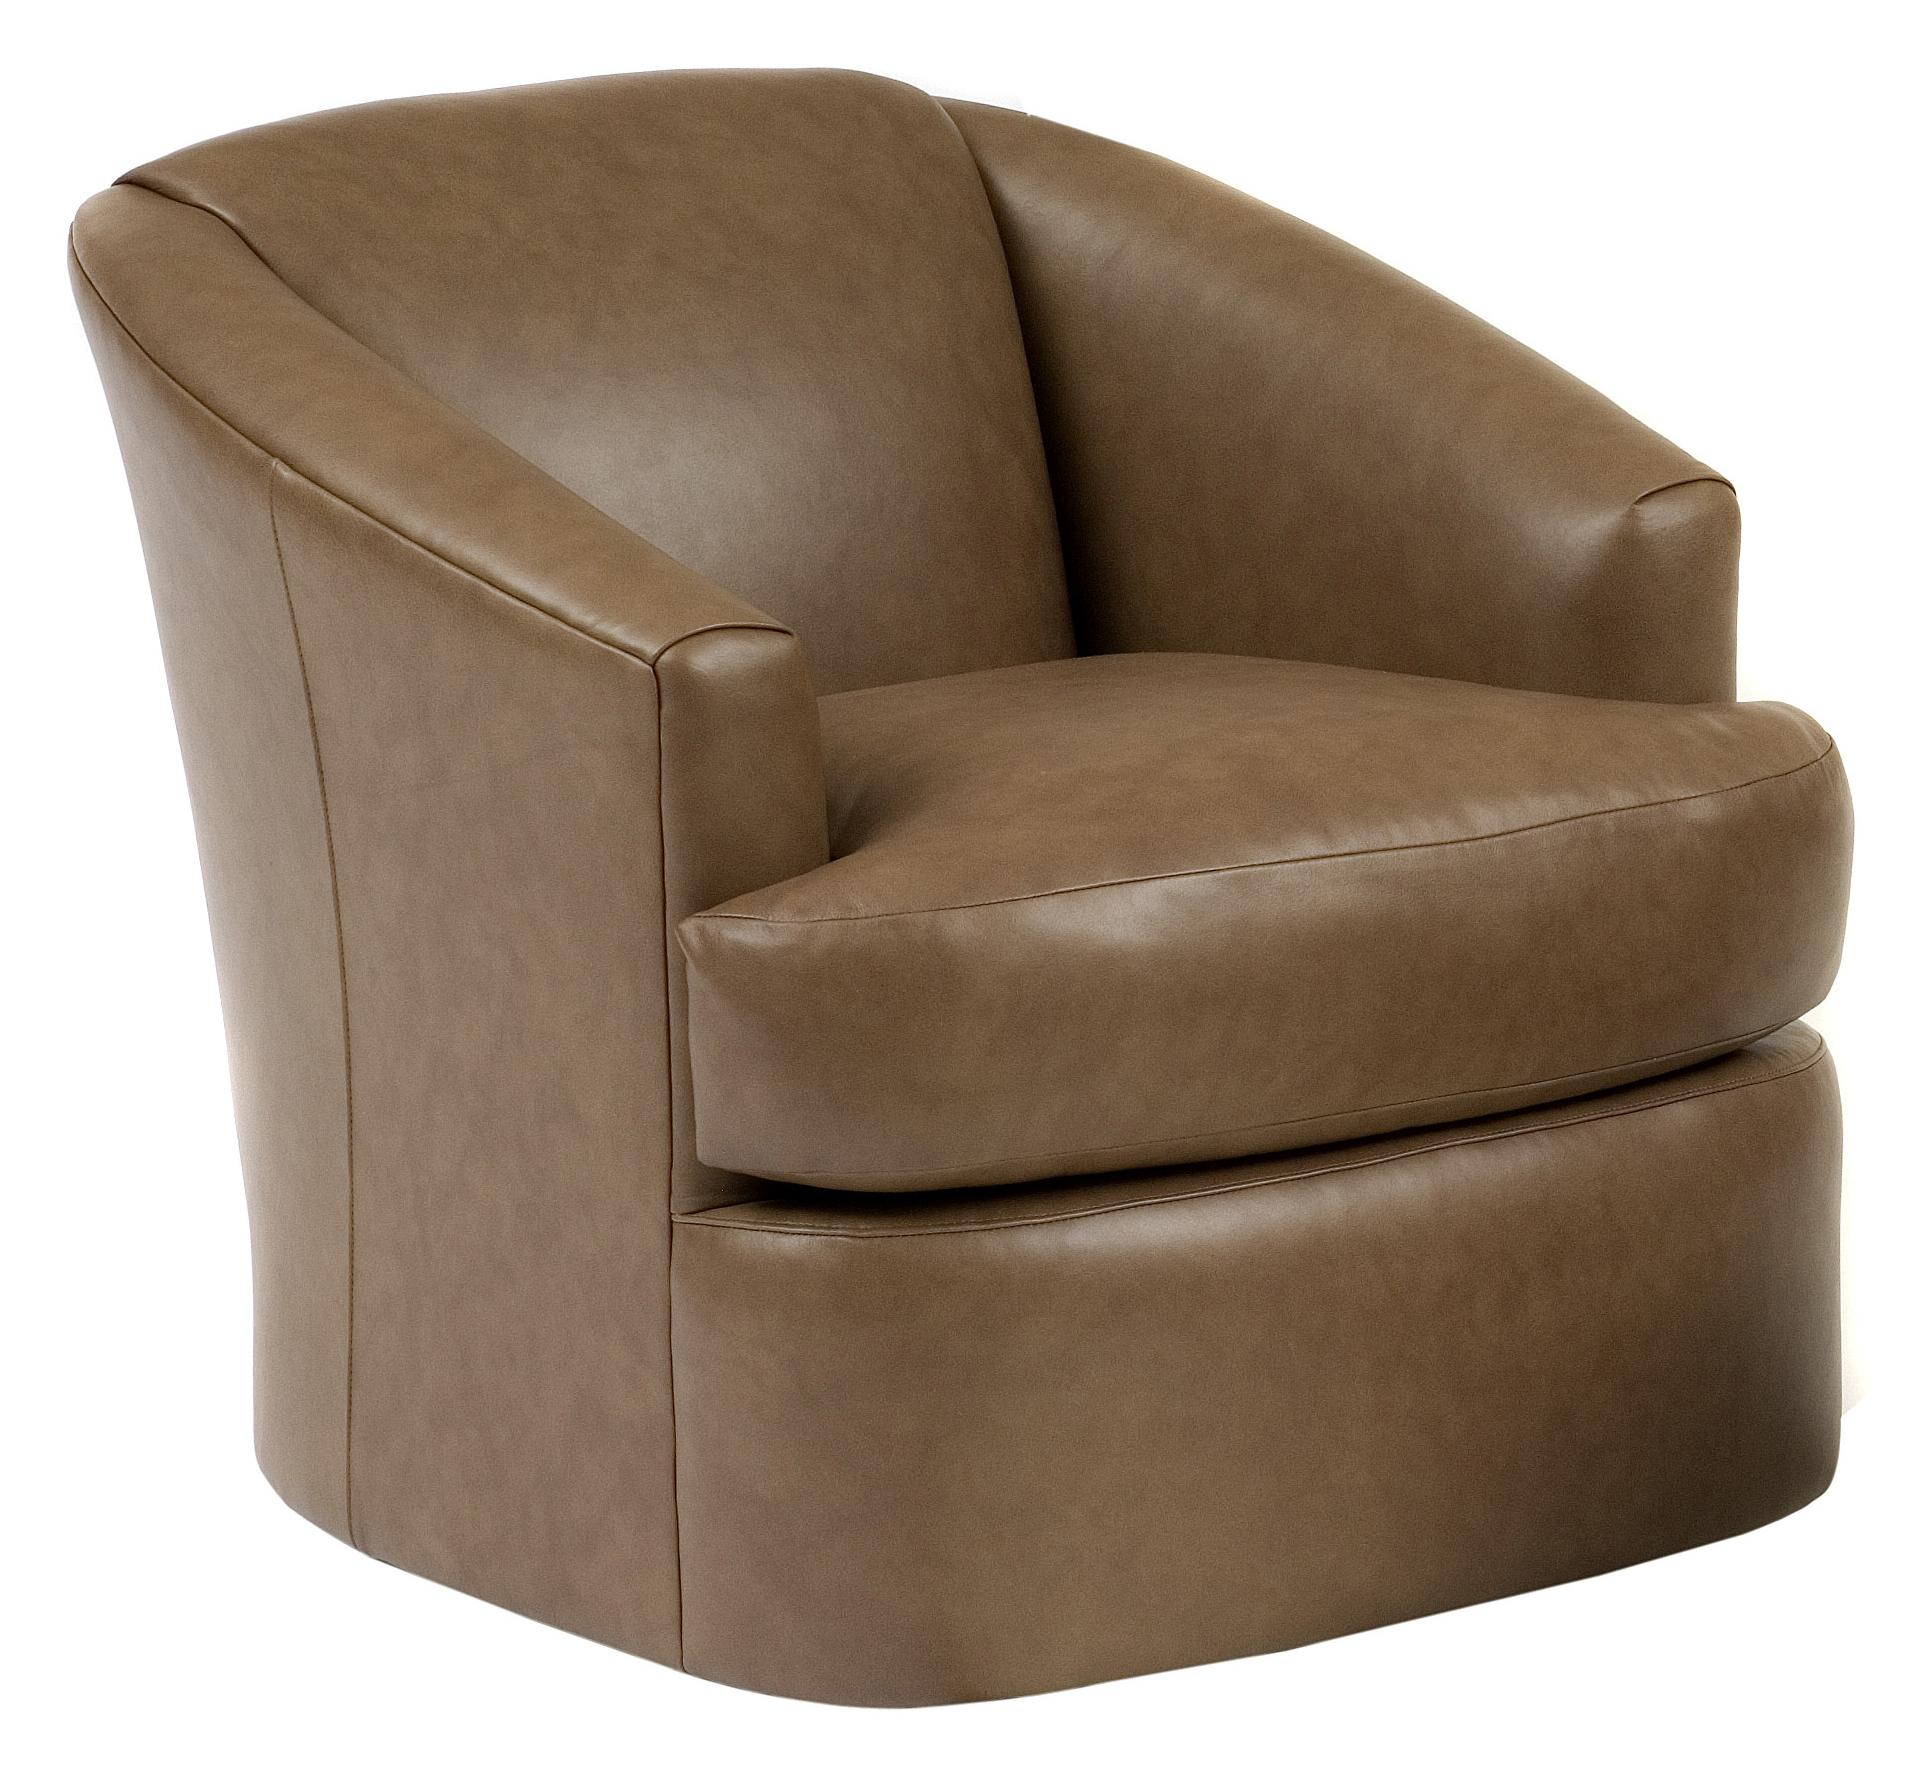 Smith Brothers Contemporary Swivel Chair by Smith Brothers at Saugerties Furniture Mart